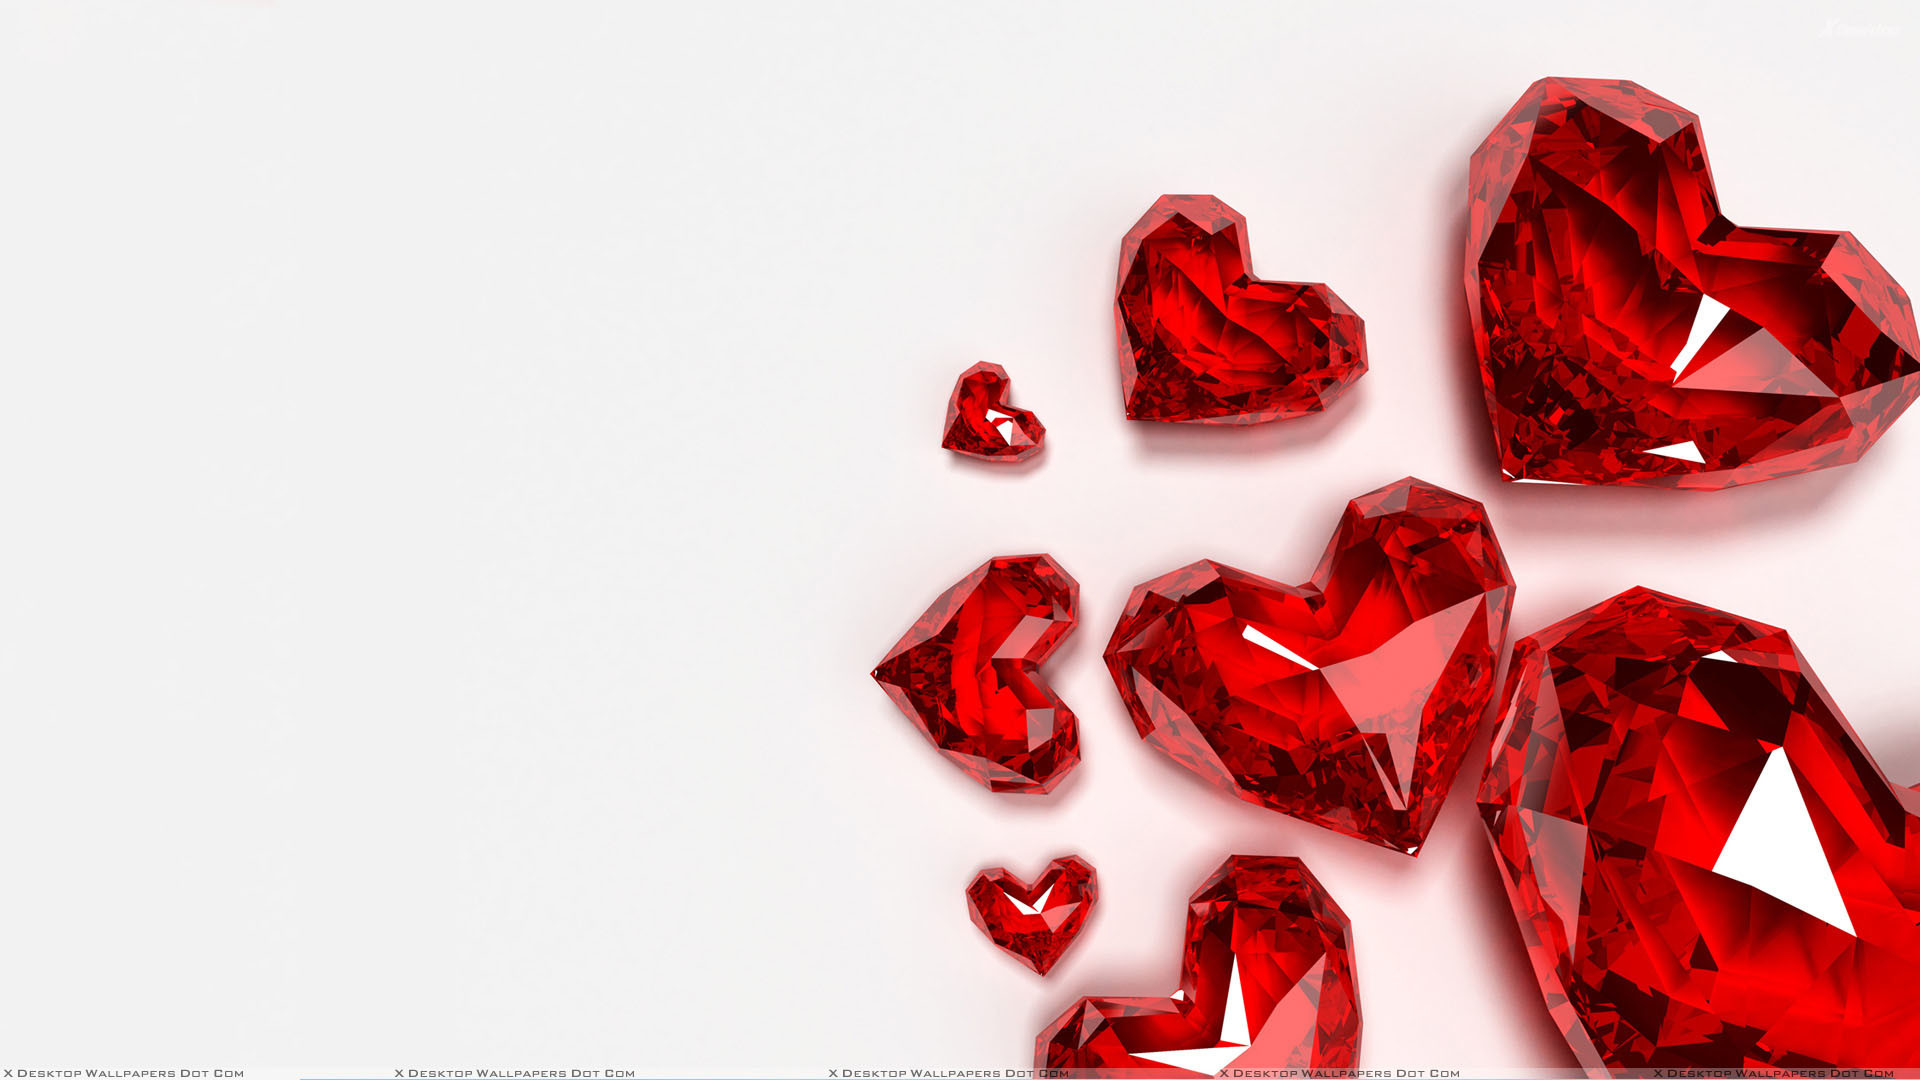 2560x1600 Wallpaper Heart Pattern Background Red Black HD Picture Image